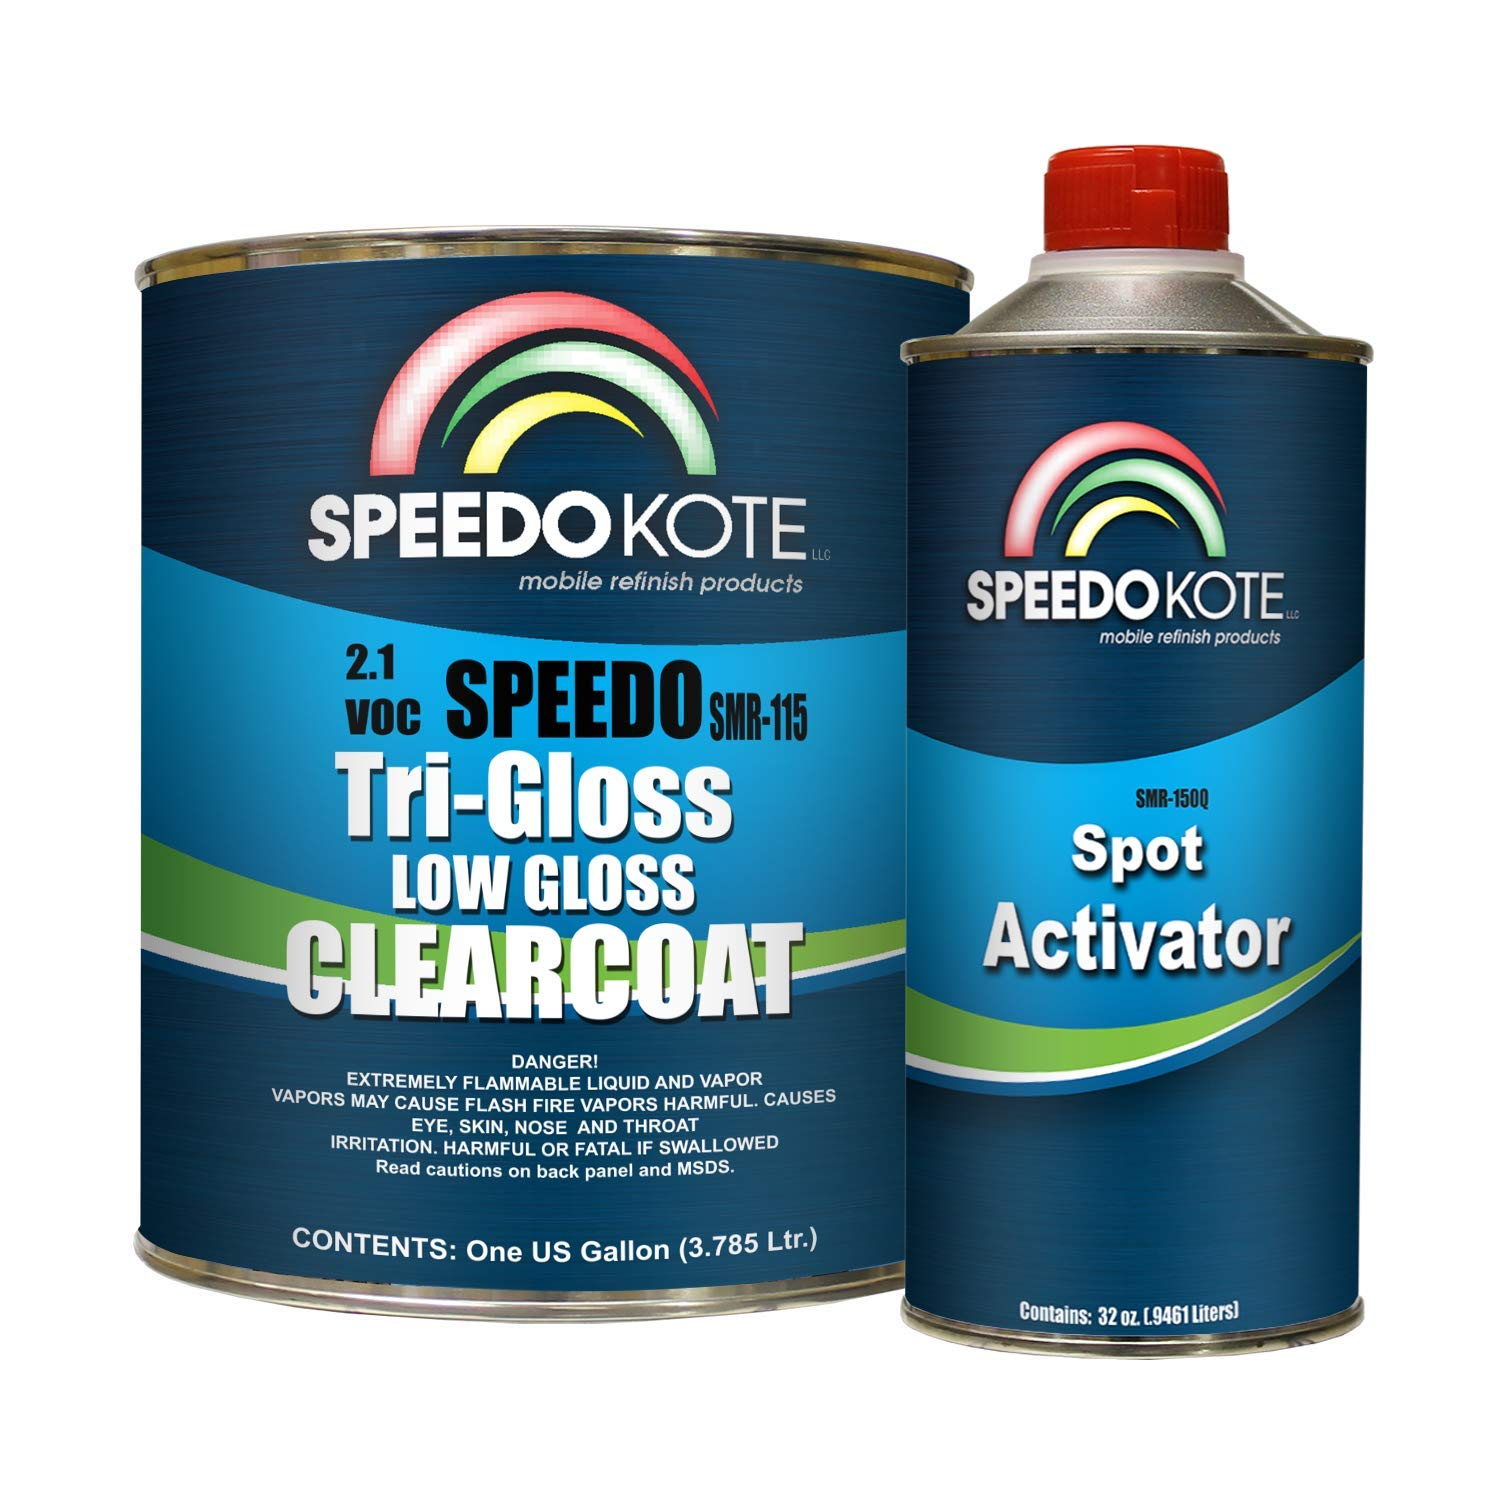 Speedokote SMR-115/150-K-M - Low Gloss 2.1 VOC urethane clear coat, gallon kit Clearcoat with medium speed activator by Speedokote (Image #1)